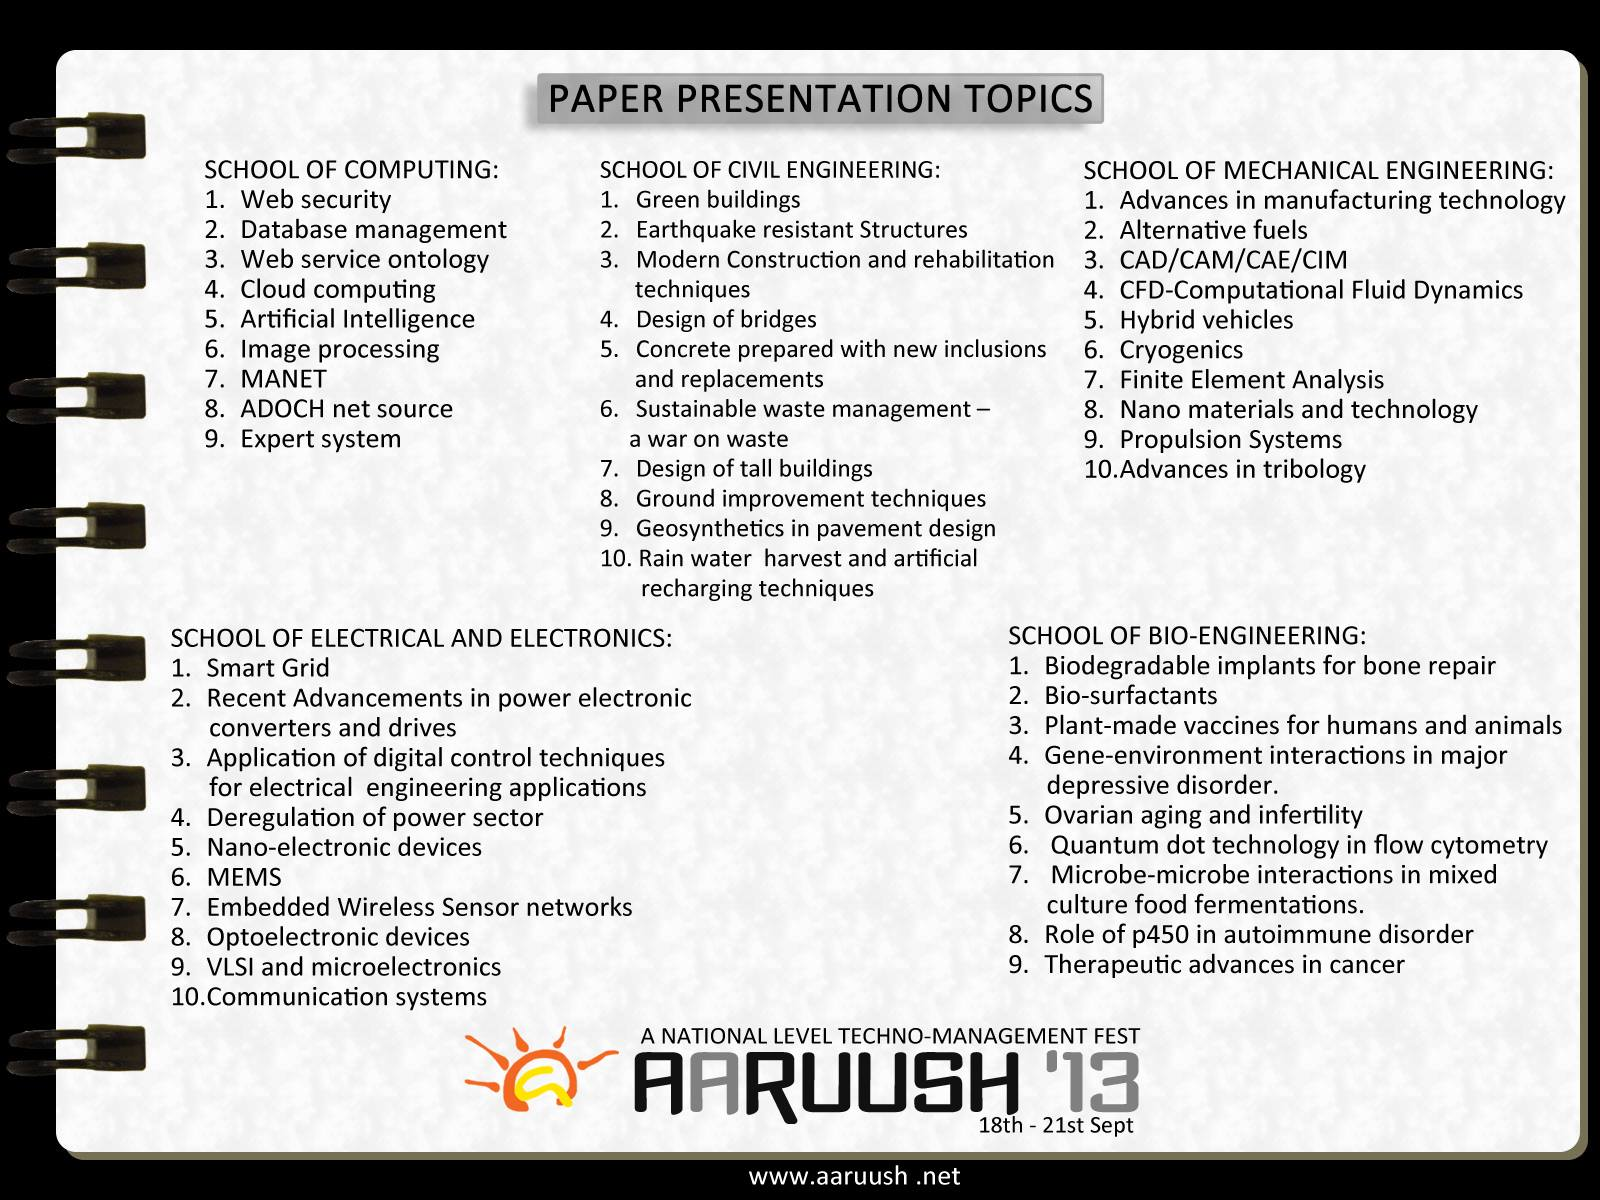 biomedical engineering batch 13 17 srm university list of paper list of paper presentations in aaruush